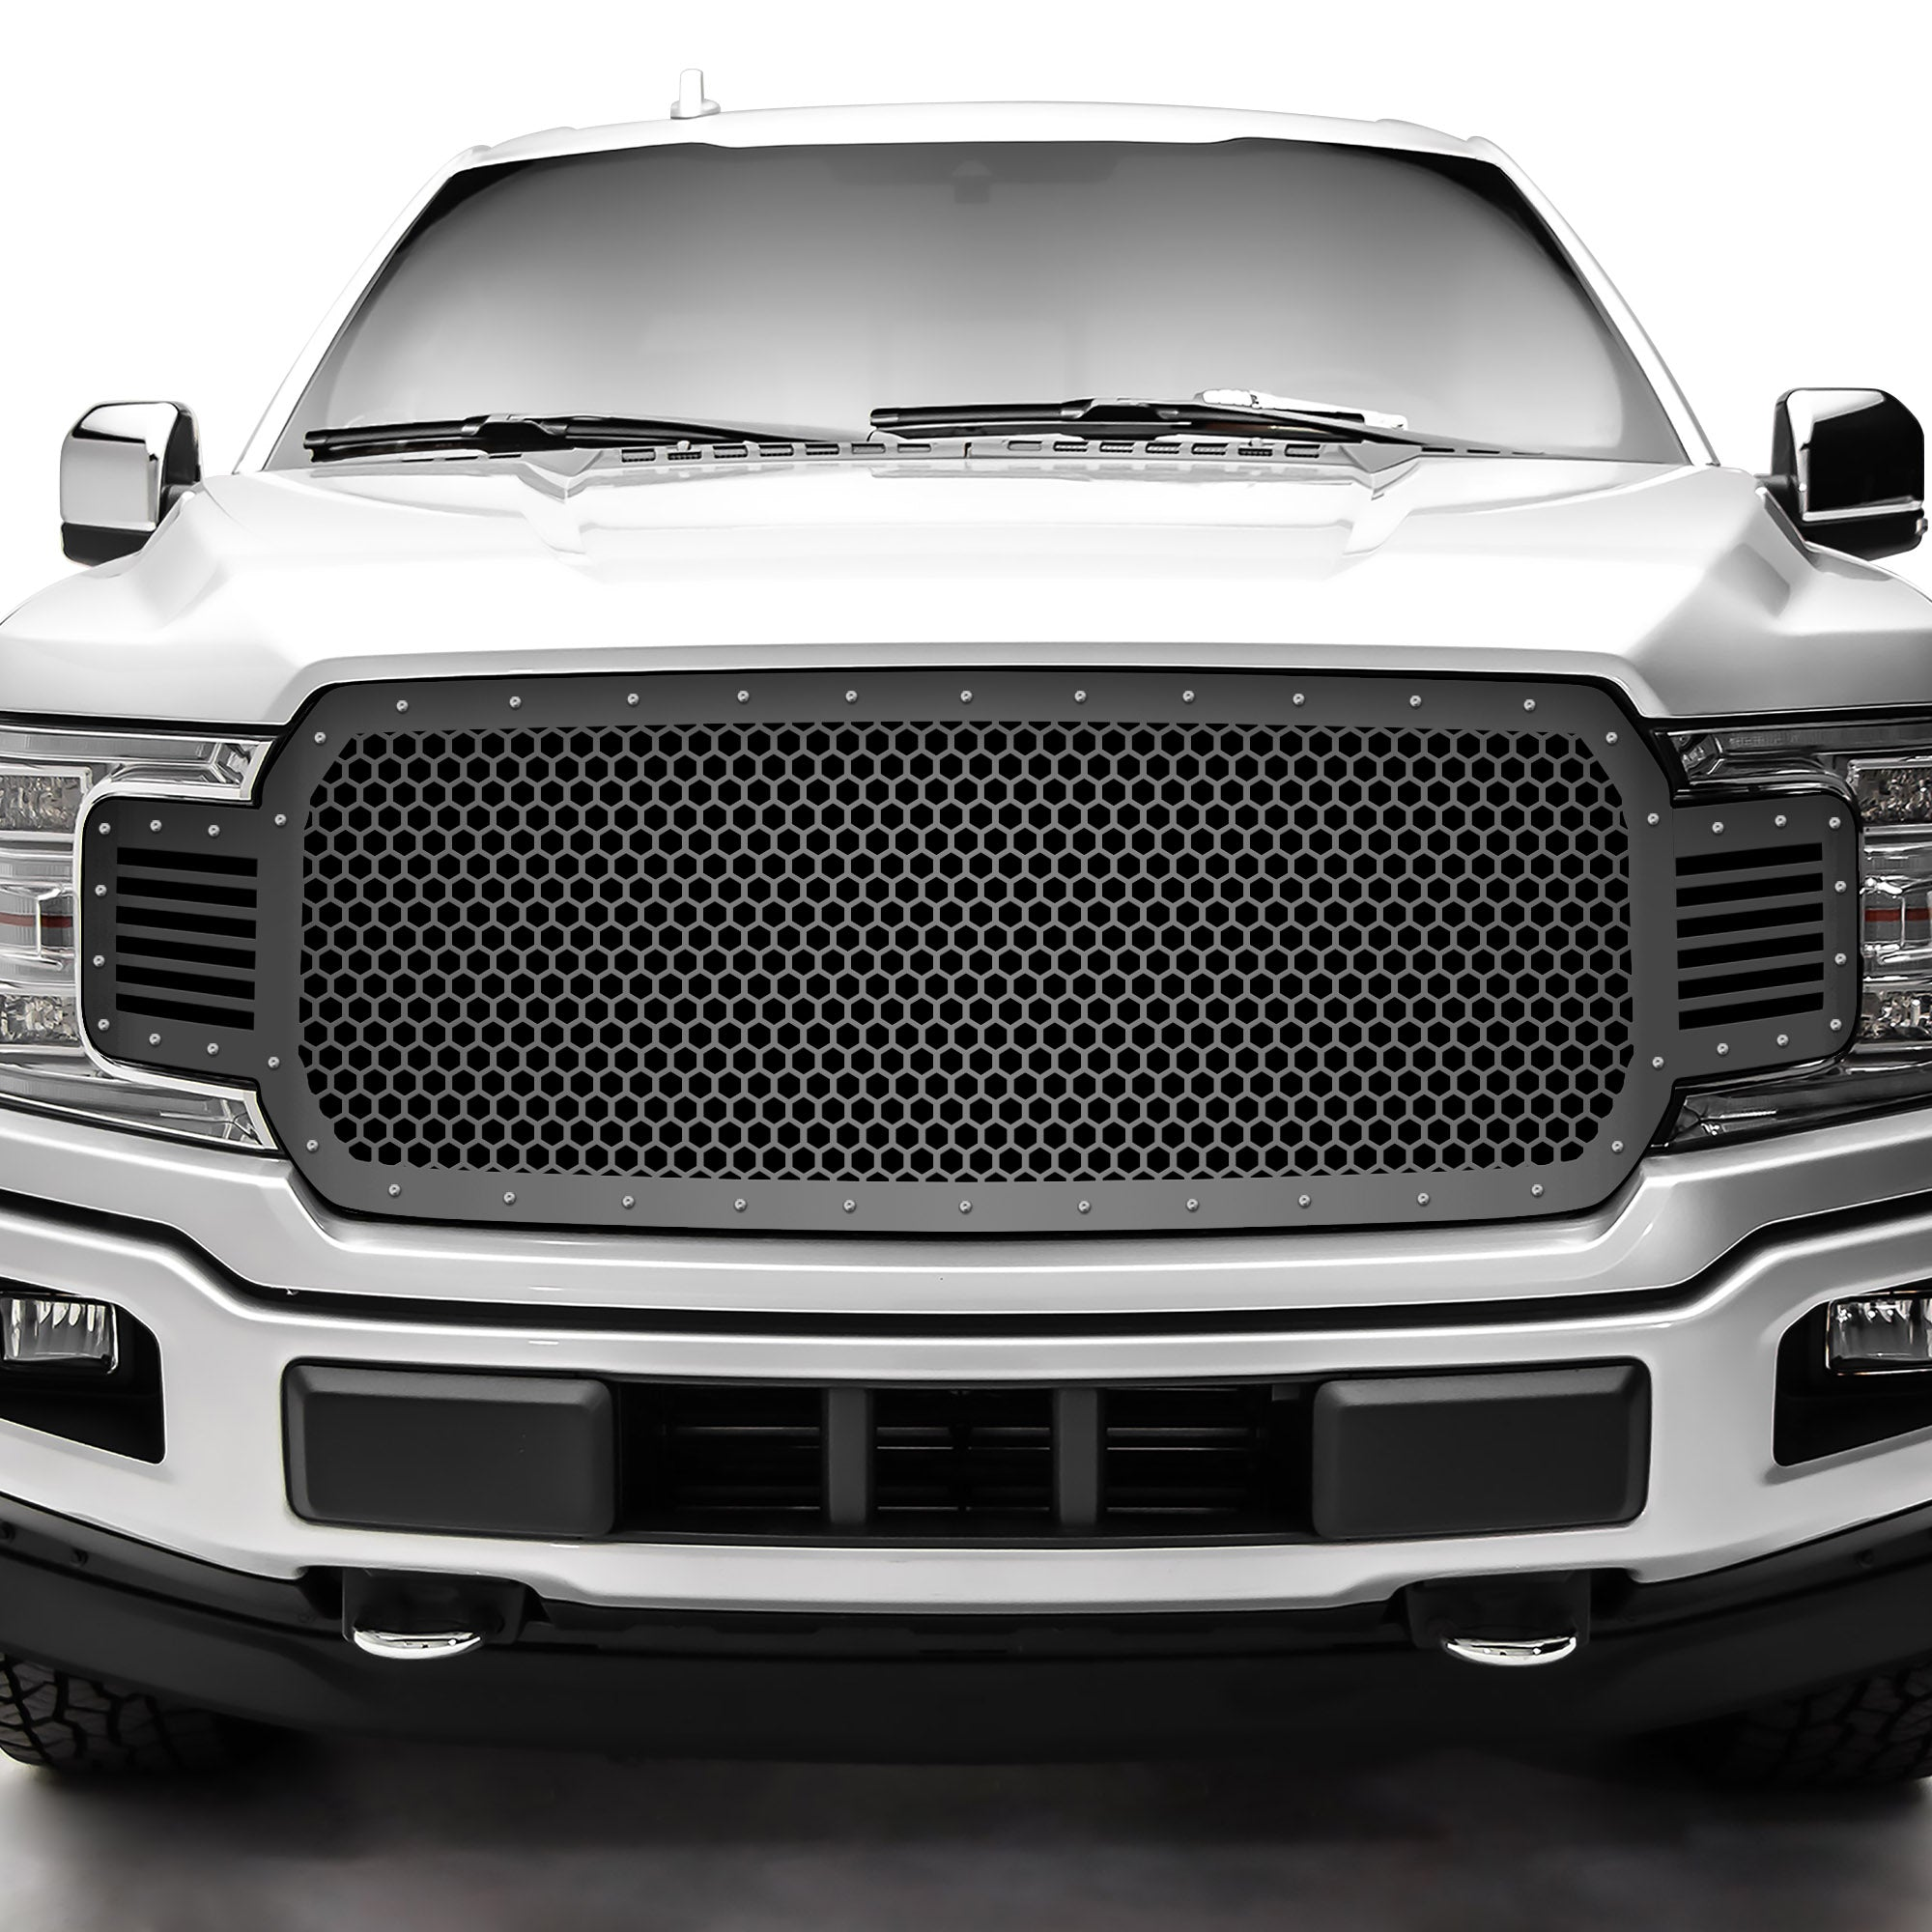 1 Piece Steel Grille for Ford F150 2018-2020 - Hex